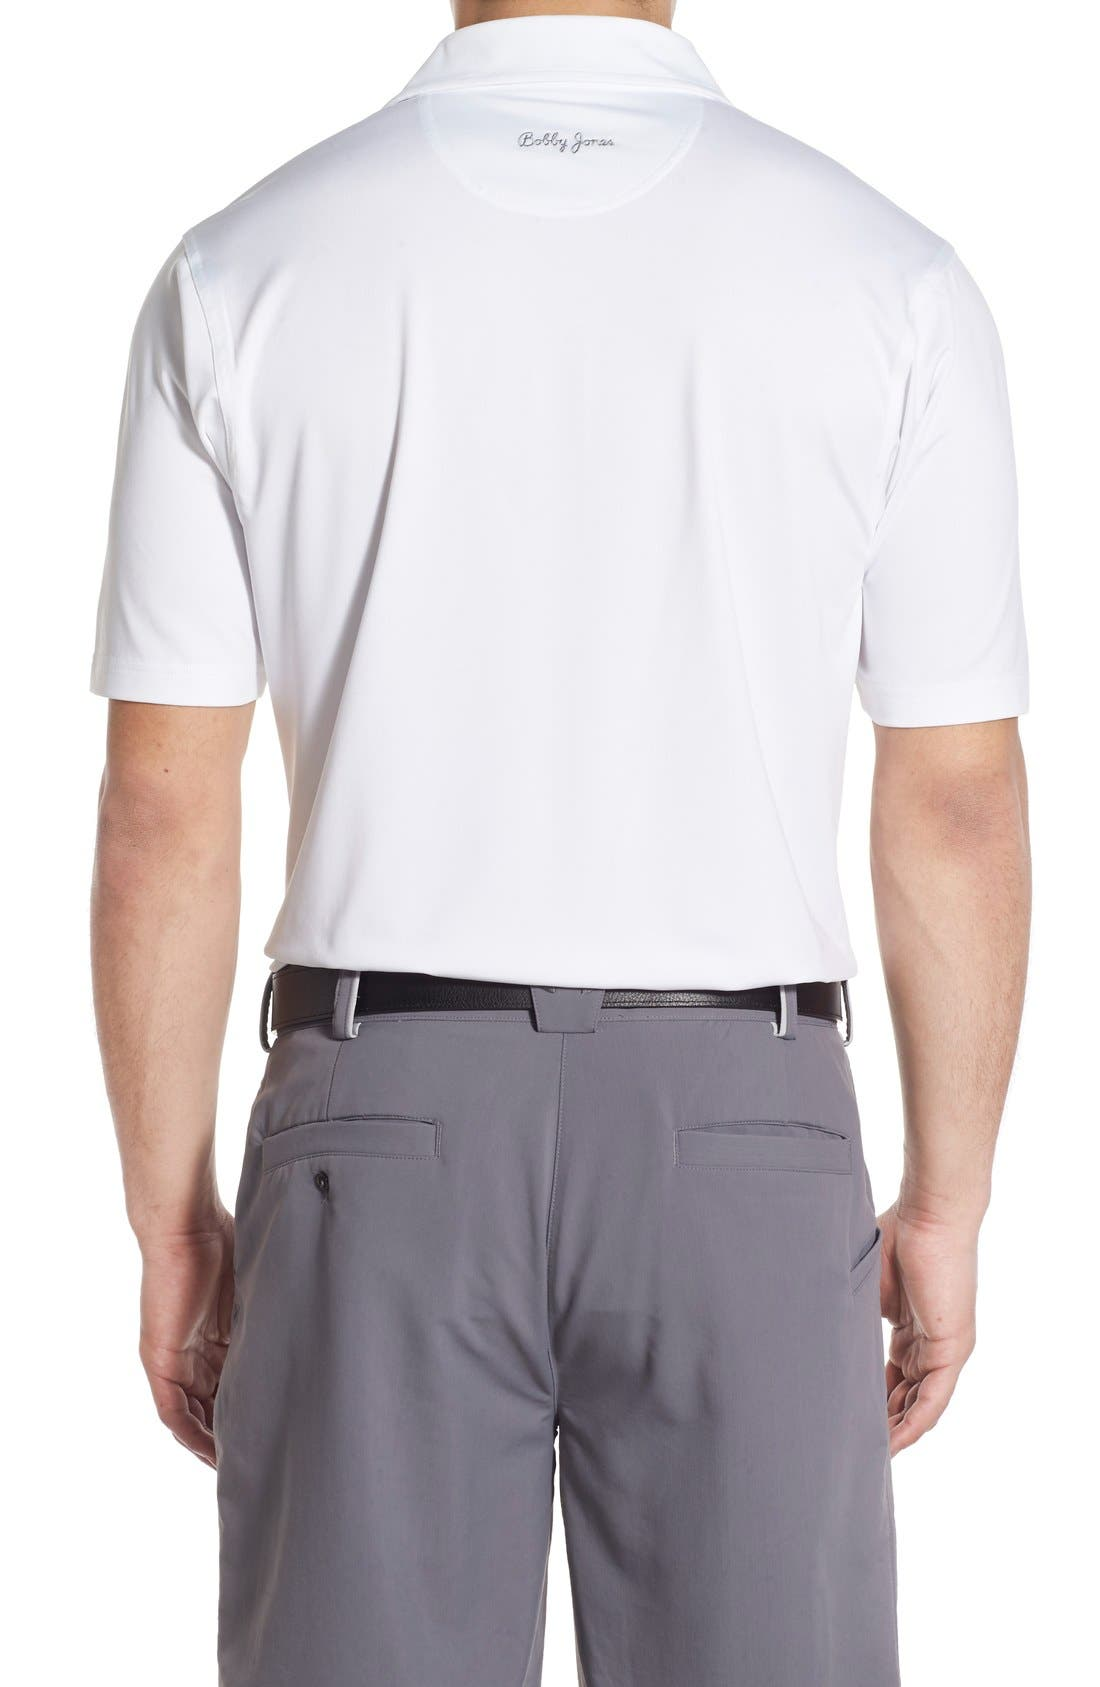 Alternate Image 2  - Bobby Jones XH20 Regular Fit Stretch Golf Polo